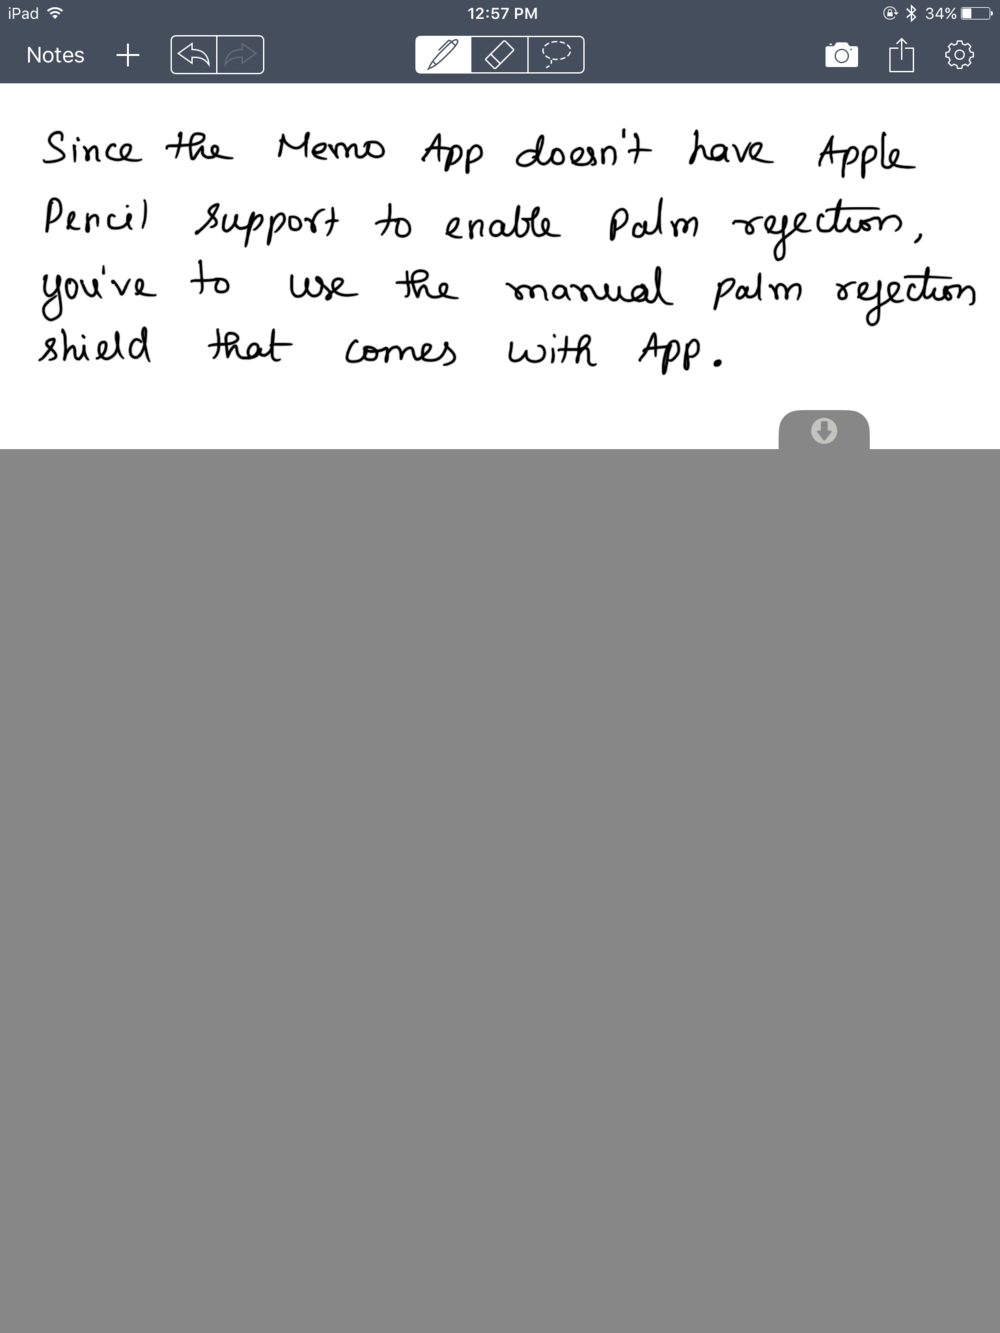 The only way to get some sort of palm rejection on the Memo App is by using a virtual sheet of shield of sorts that prevents any spurious inputs from your palm or other touches